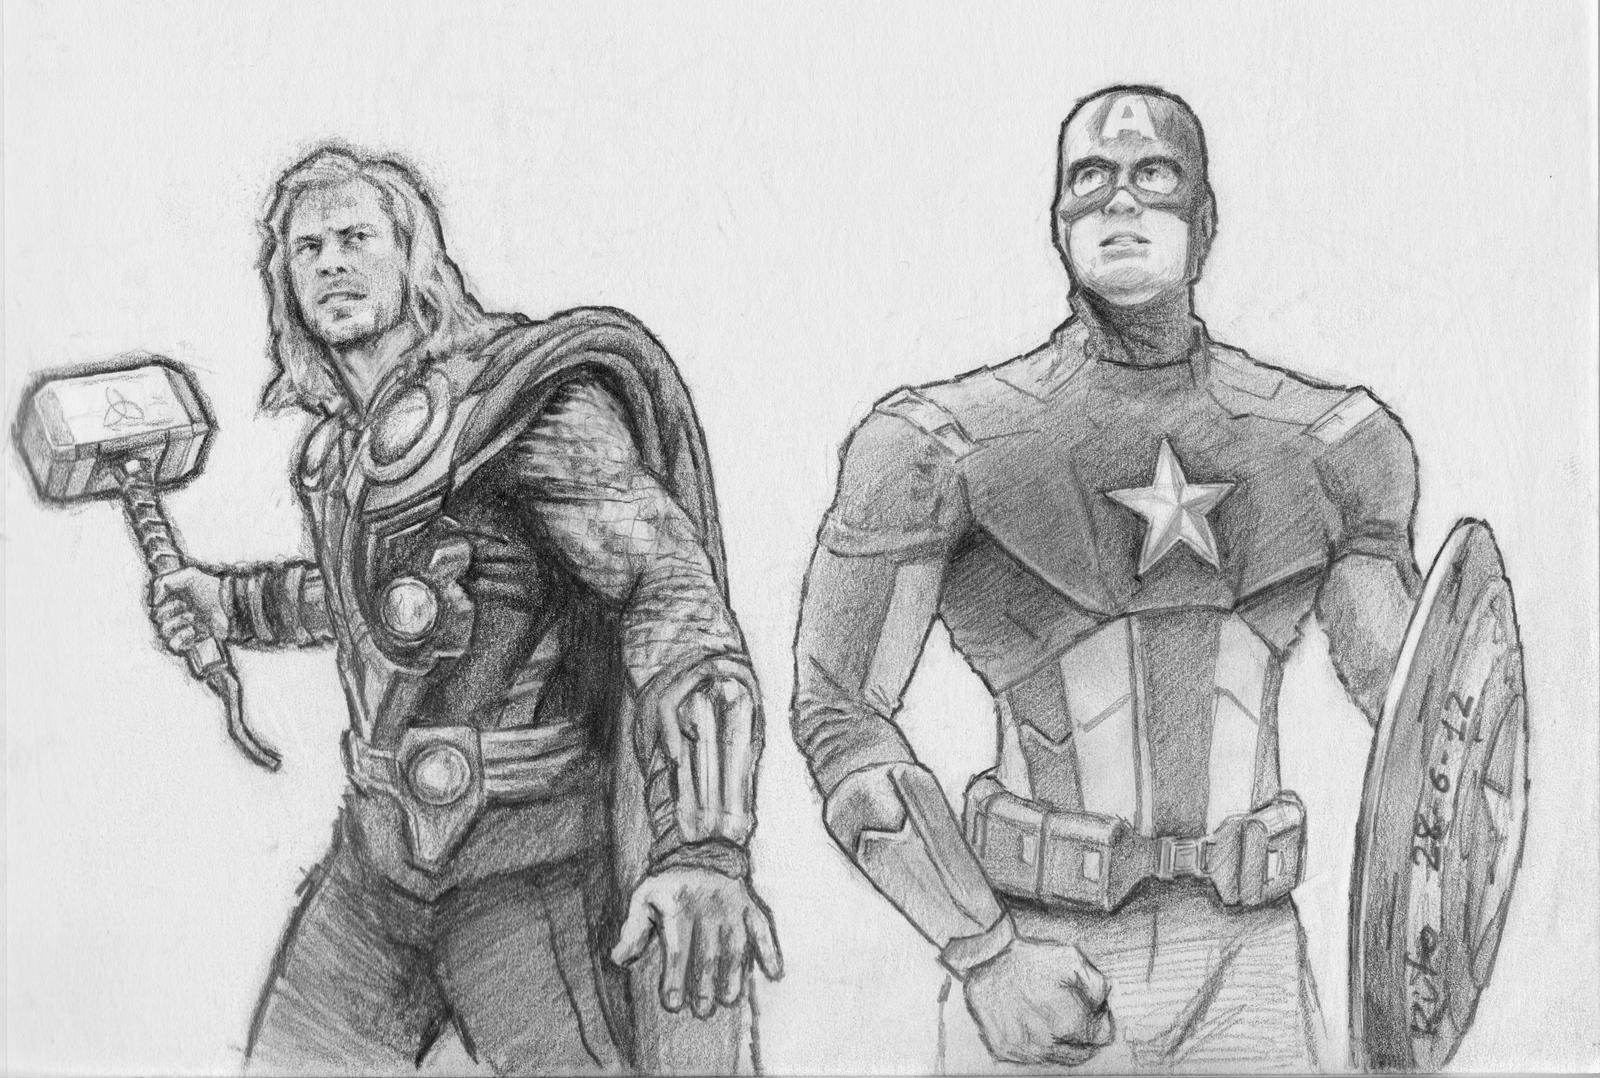 Avengers Sketches Drawings Avengers Drawings&form